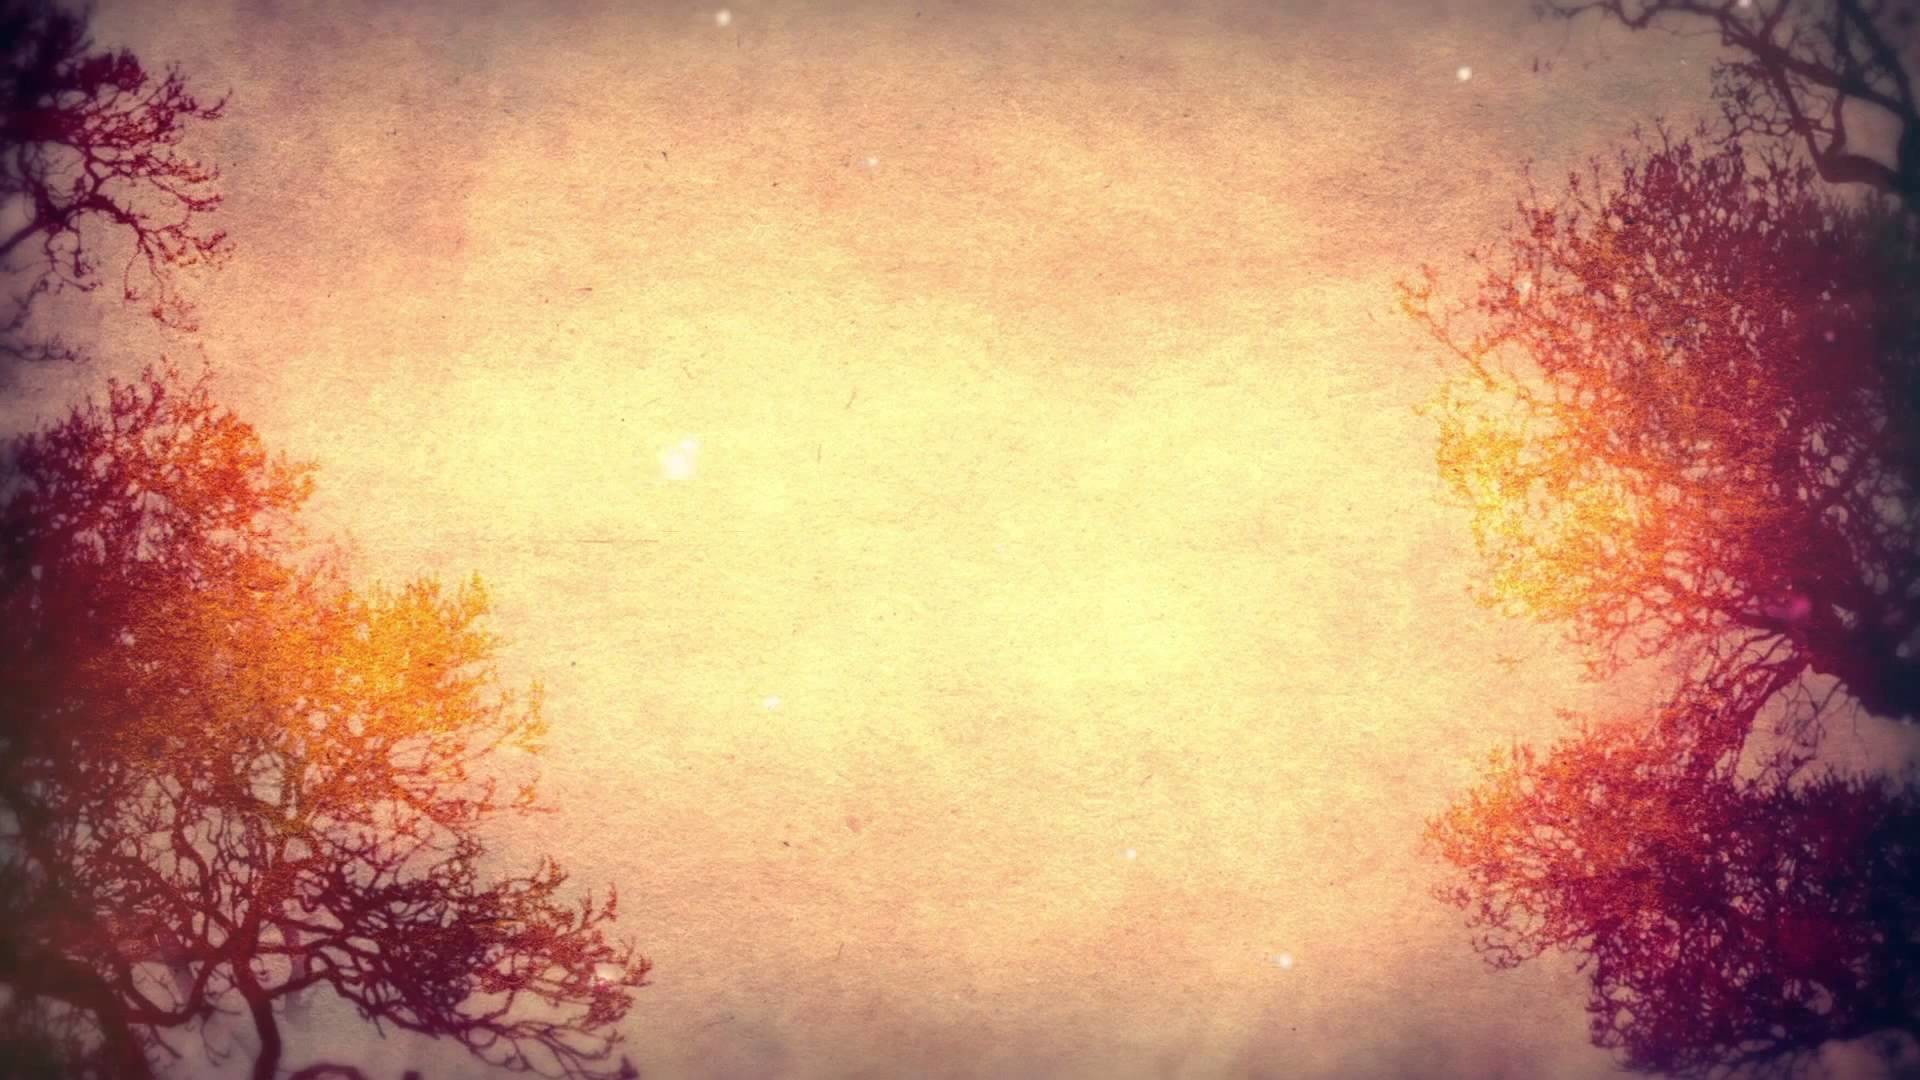 Free Fall Widescreen Wallpaper Nice Pictures For Background 61 Images